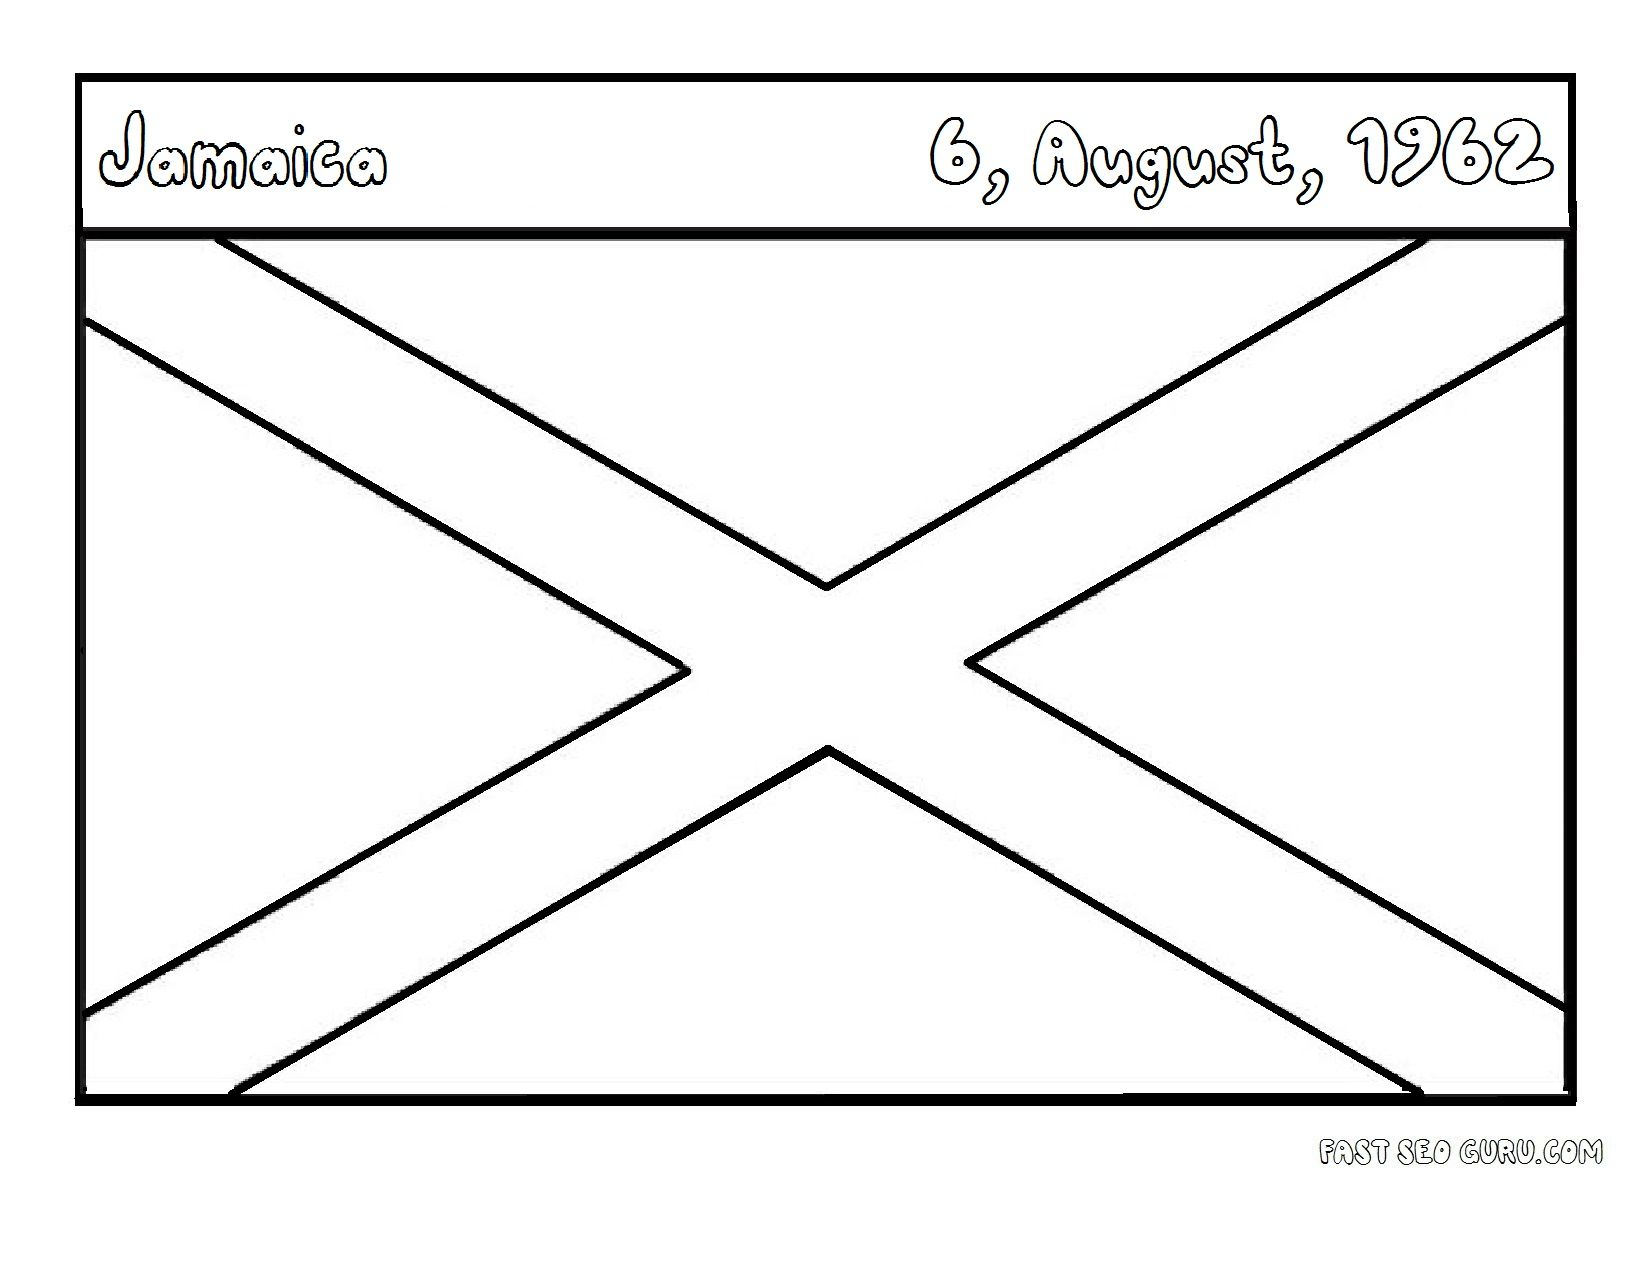 Flags Of Jamaica Coloring Page For Kids Jamaica Flag Kids